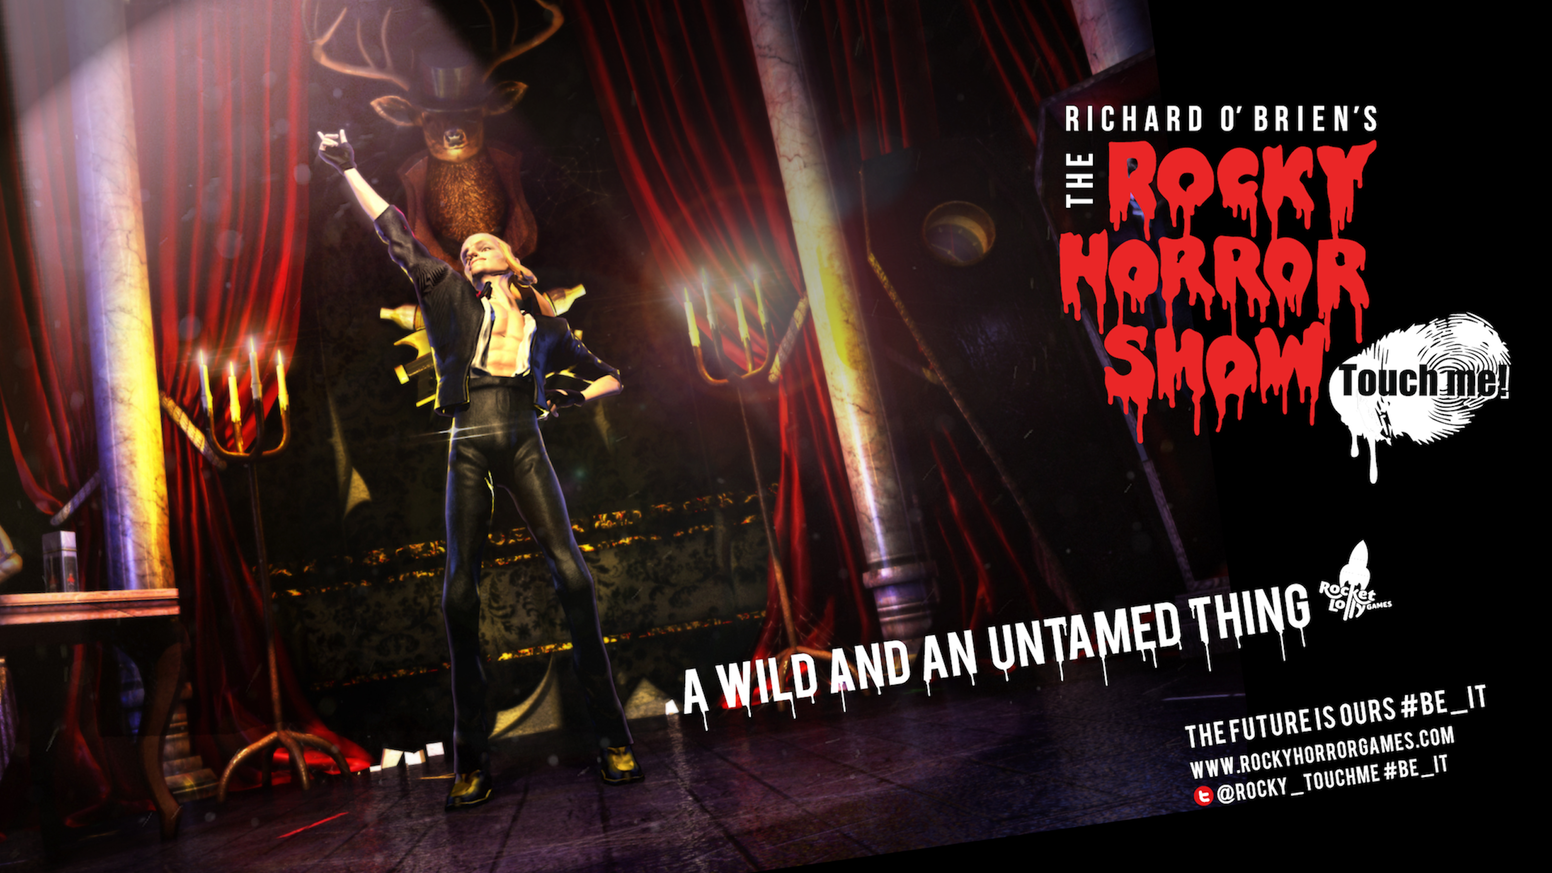 48f81bfcf7 The Official Richard O Brien s The Rocky Horror Show game with a  tantalizing twist on